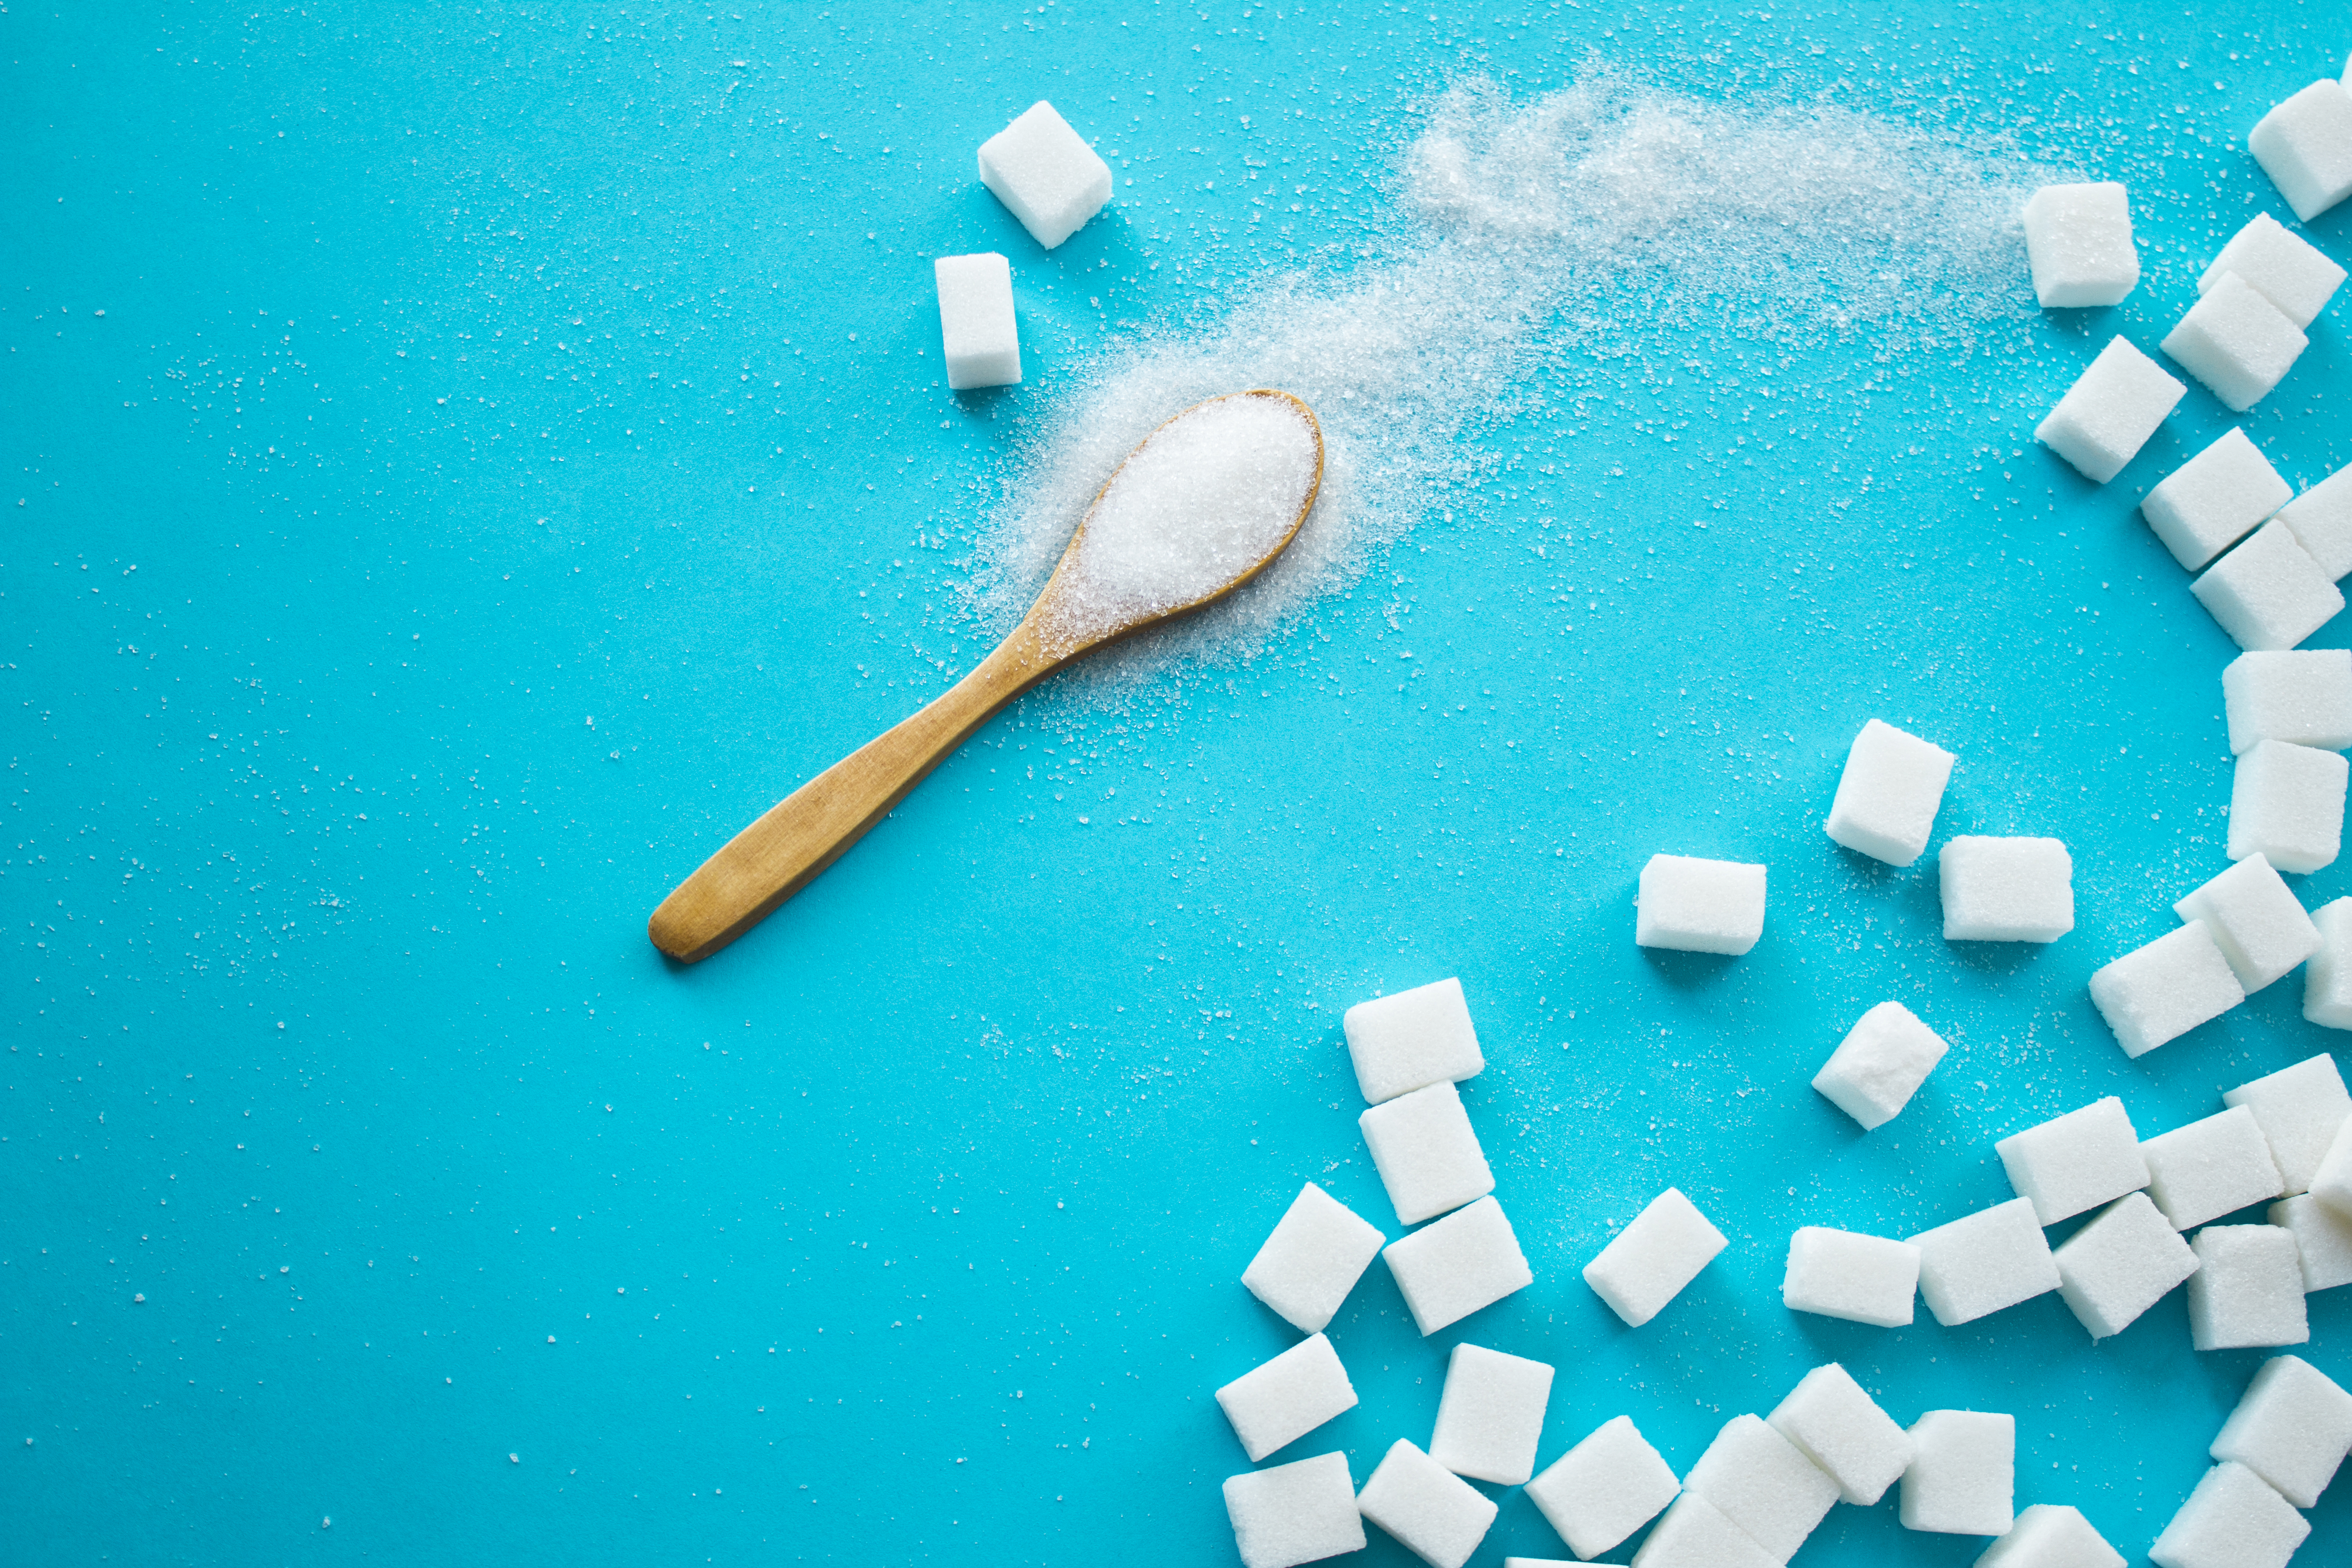 White sugar with spoon on blue background. Top view.